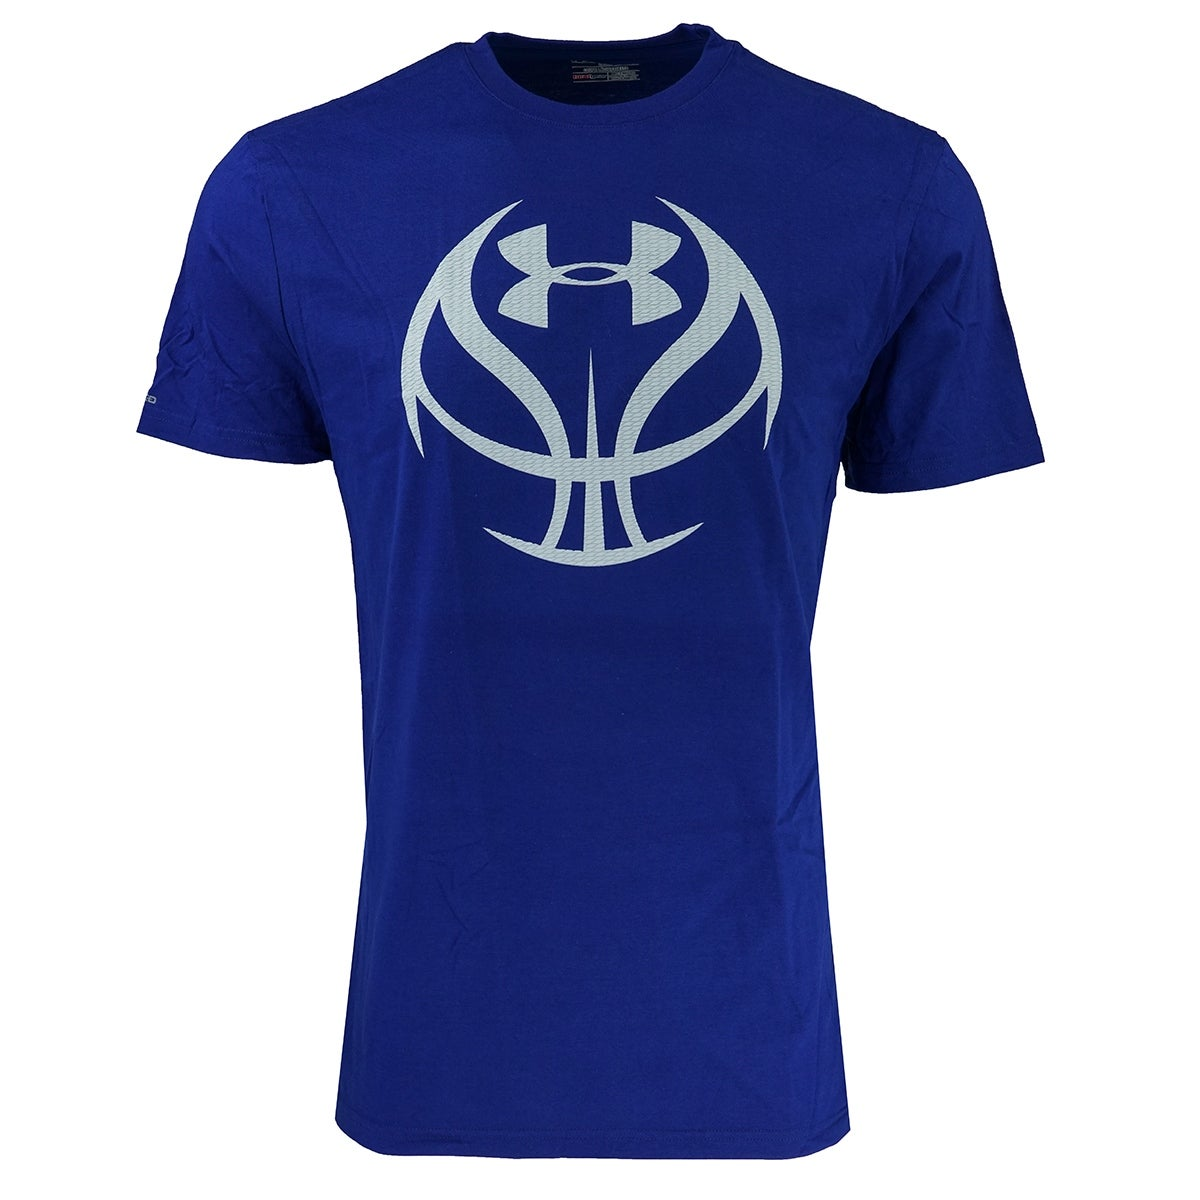 779f679837fc Shop Under Armour Men s Heatgear Basketball Logo T-Shirt - royal blue ash  white - On Sale - Free Shipping On Orders Over  45 - Overstock - 23485351